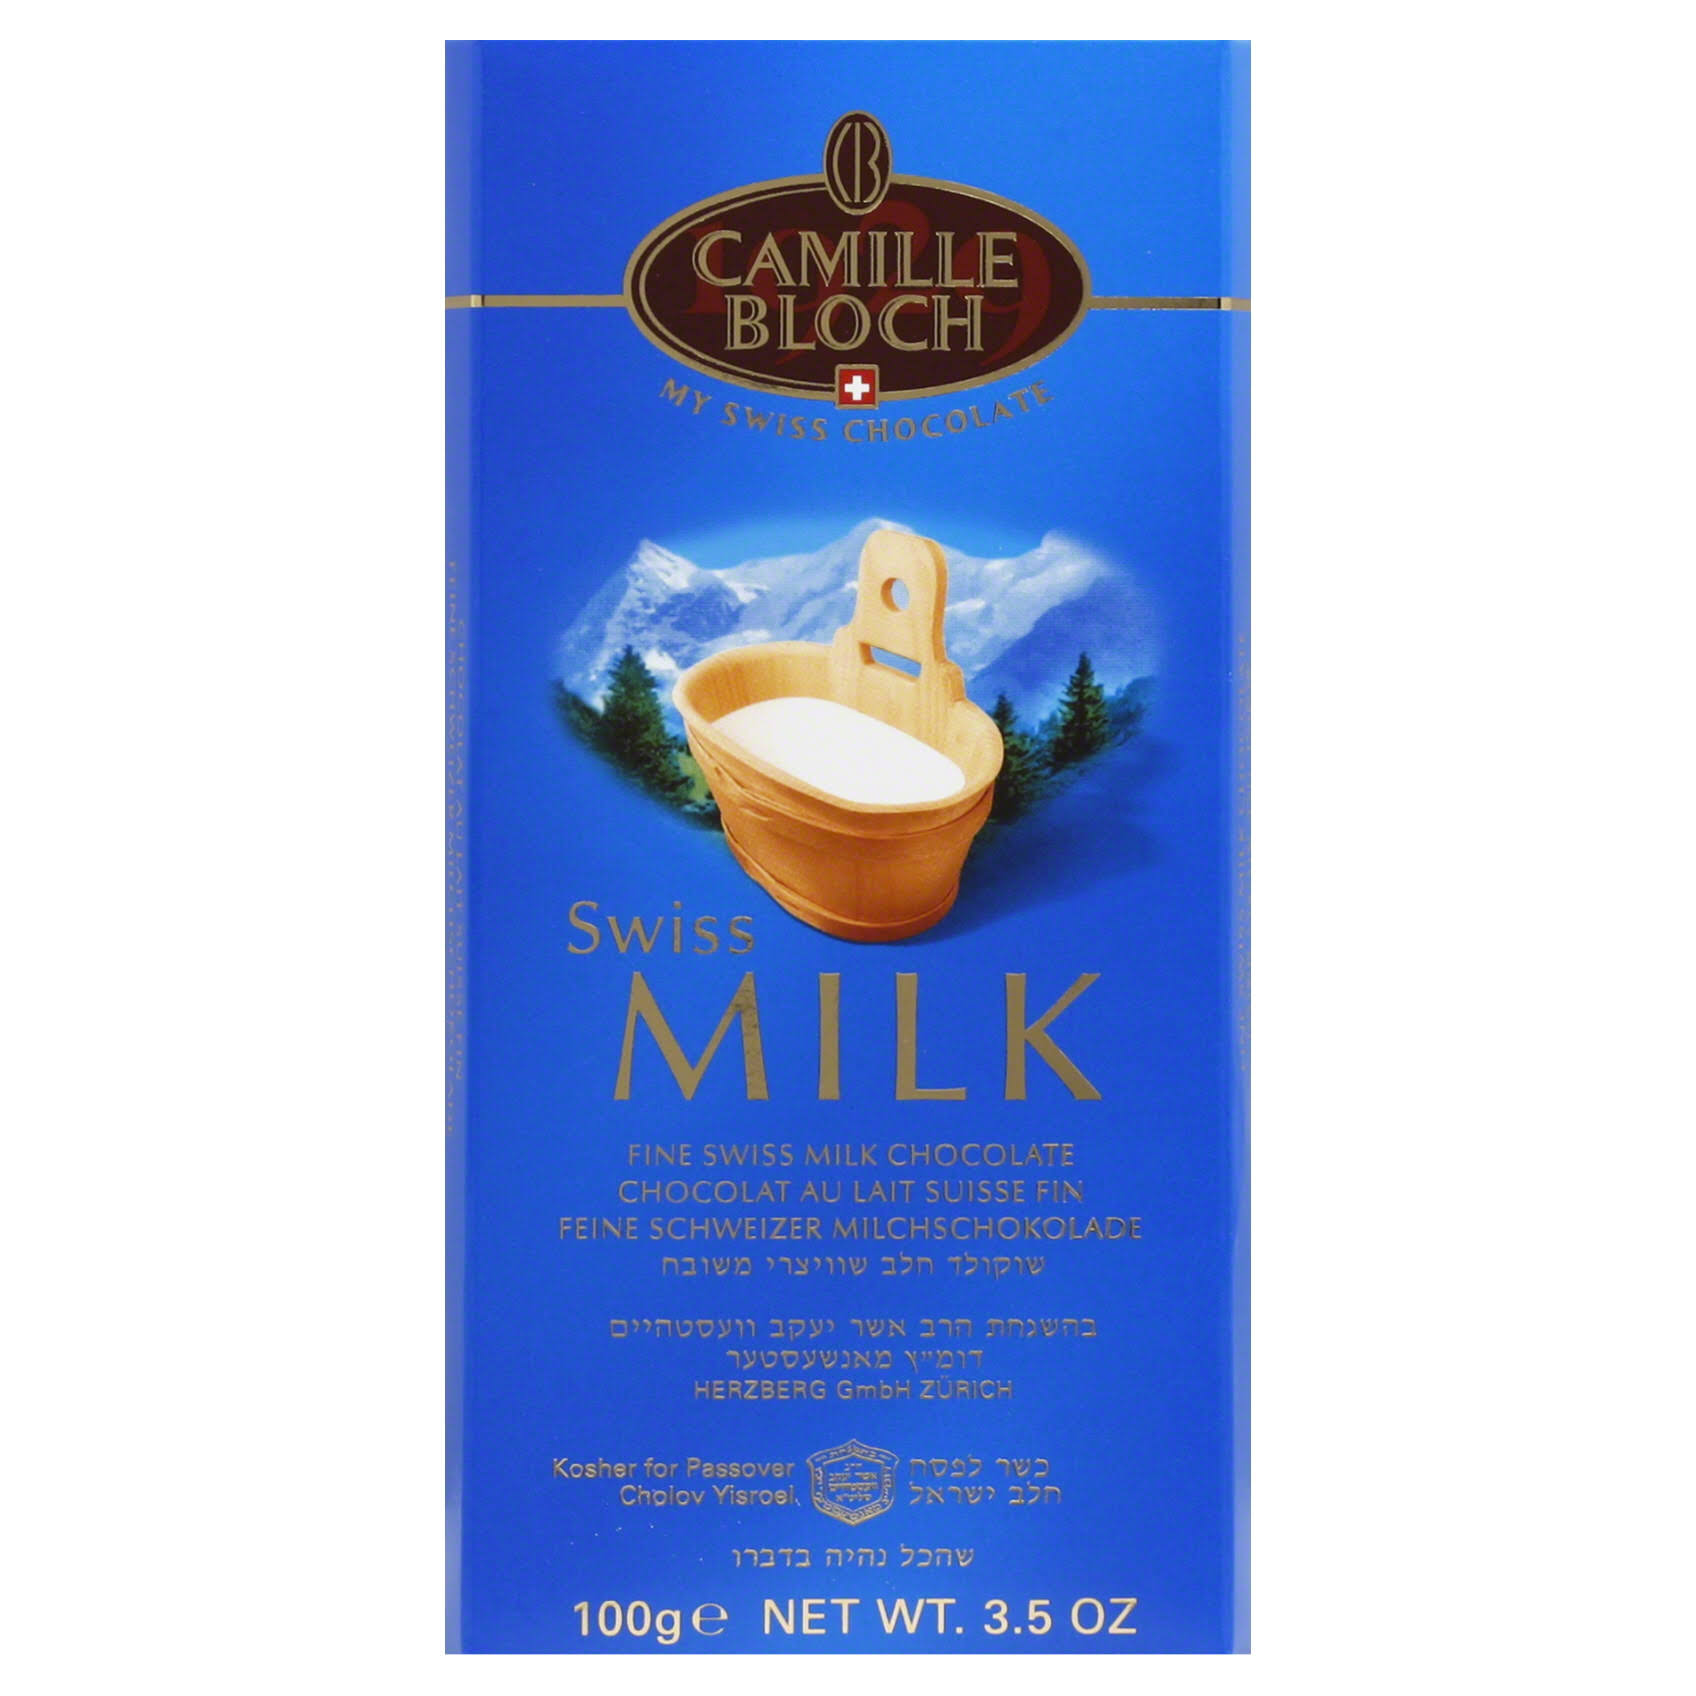 Camille Bloch Swiss Milk Chocolate Bar - 35oz, Pack of 4